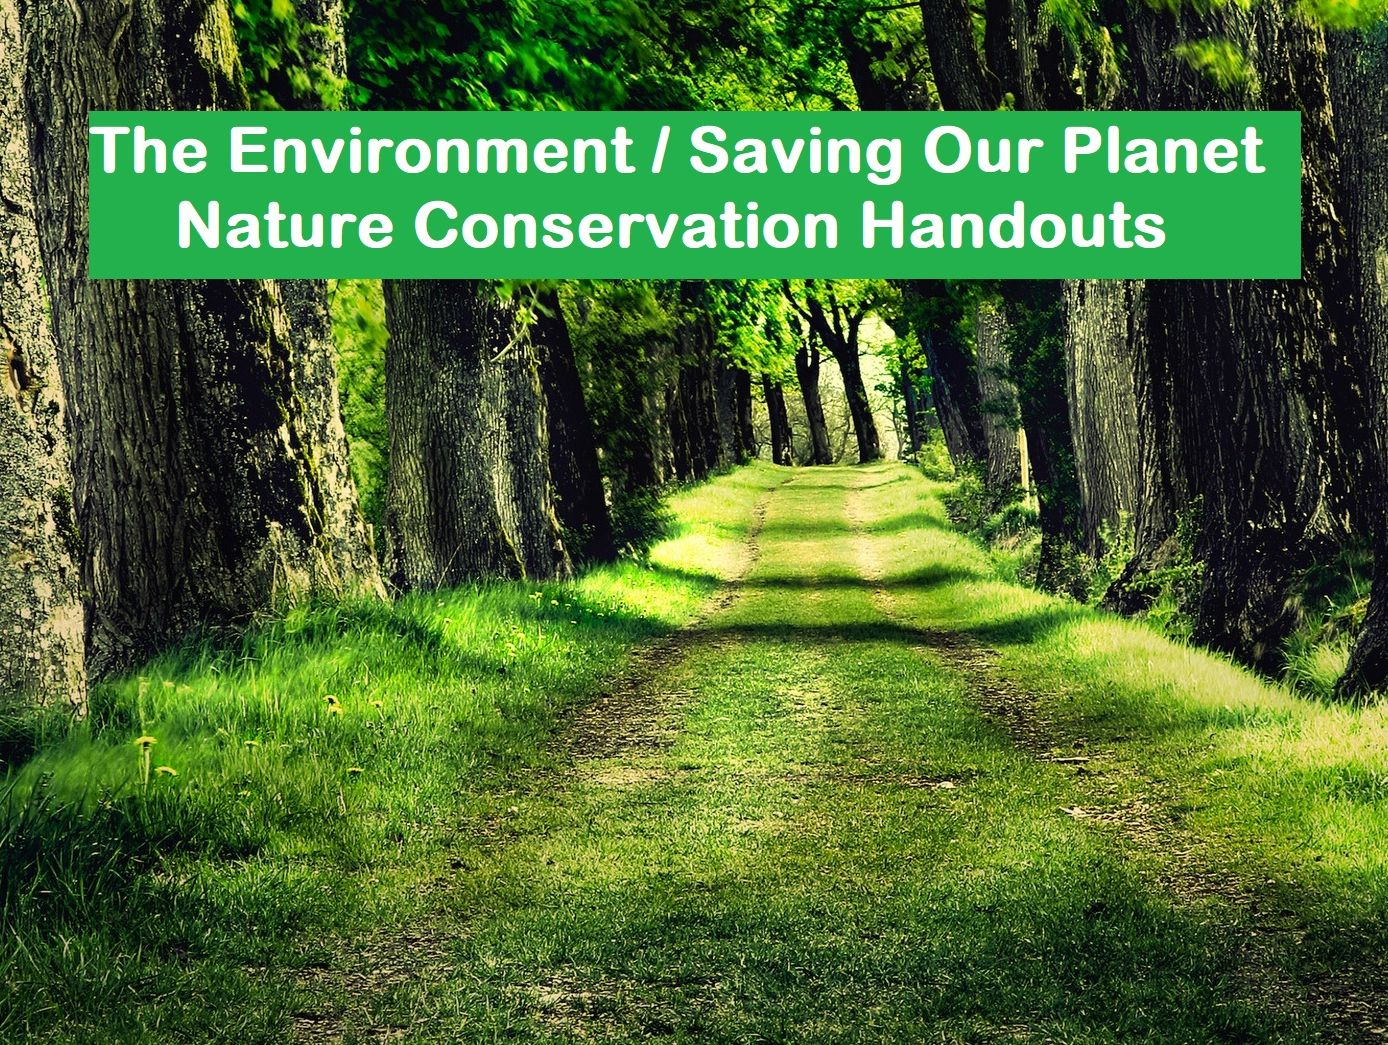 The Environment/ Saving Our Planet / Nature Conservation Handouts (SAVE 60%)